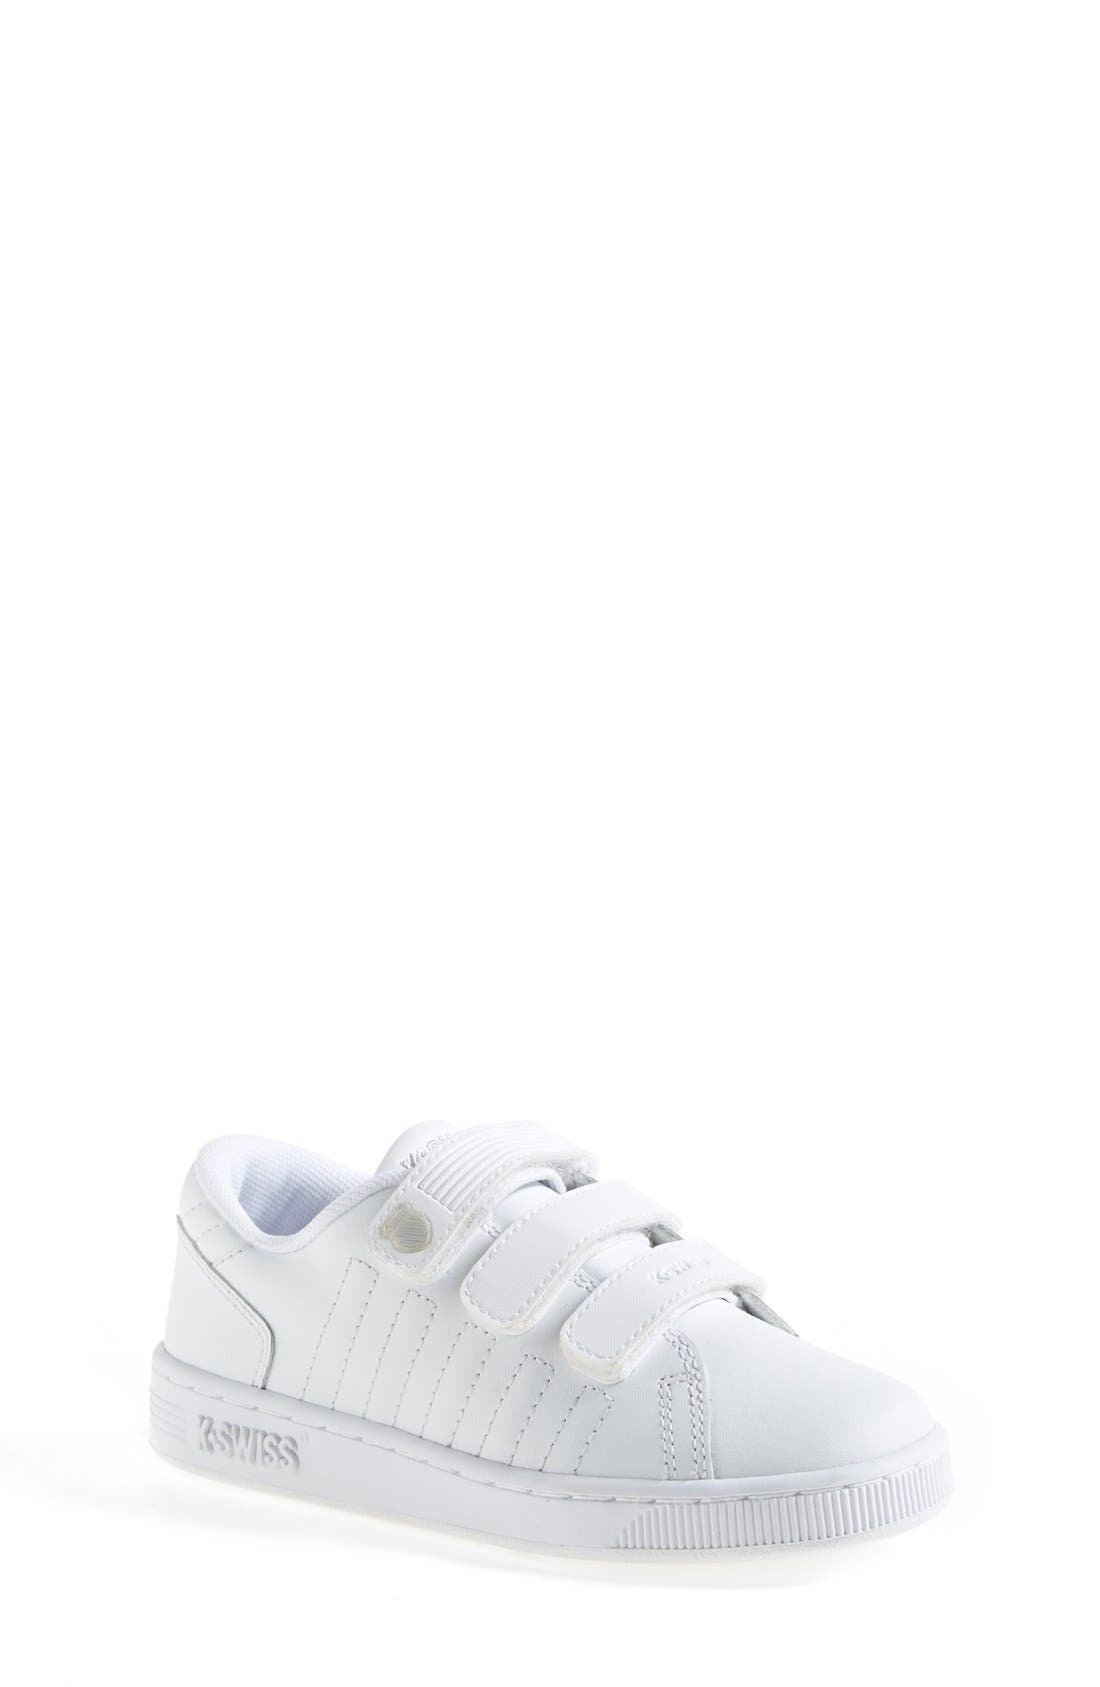 Alternate Image 1 Selected - K-Swiss 'Lozan' Sneaker (Toddler & Little Kid)